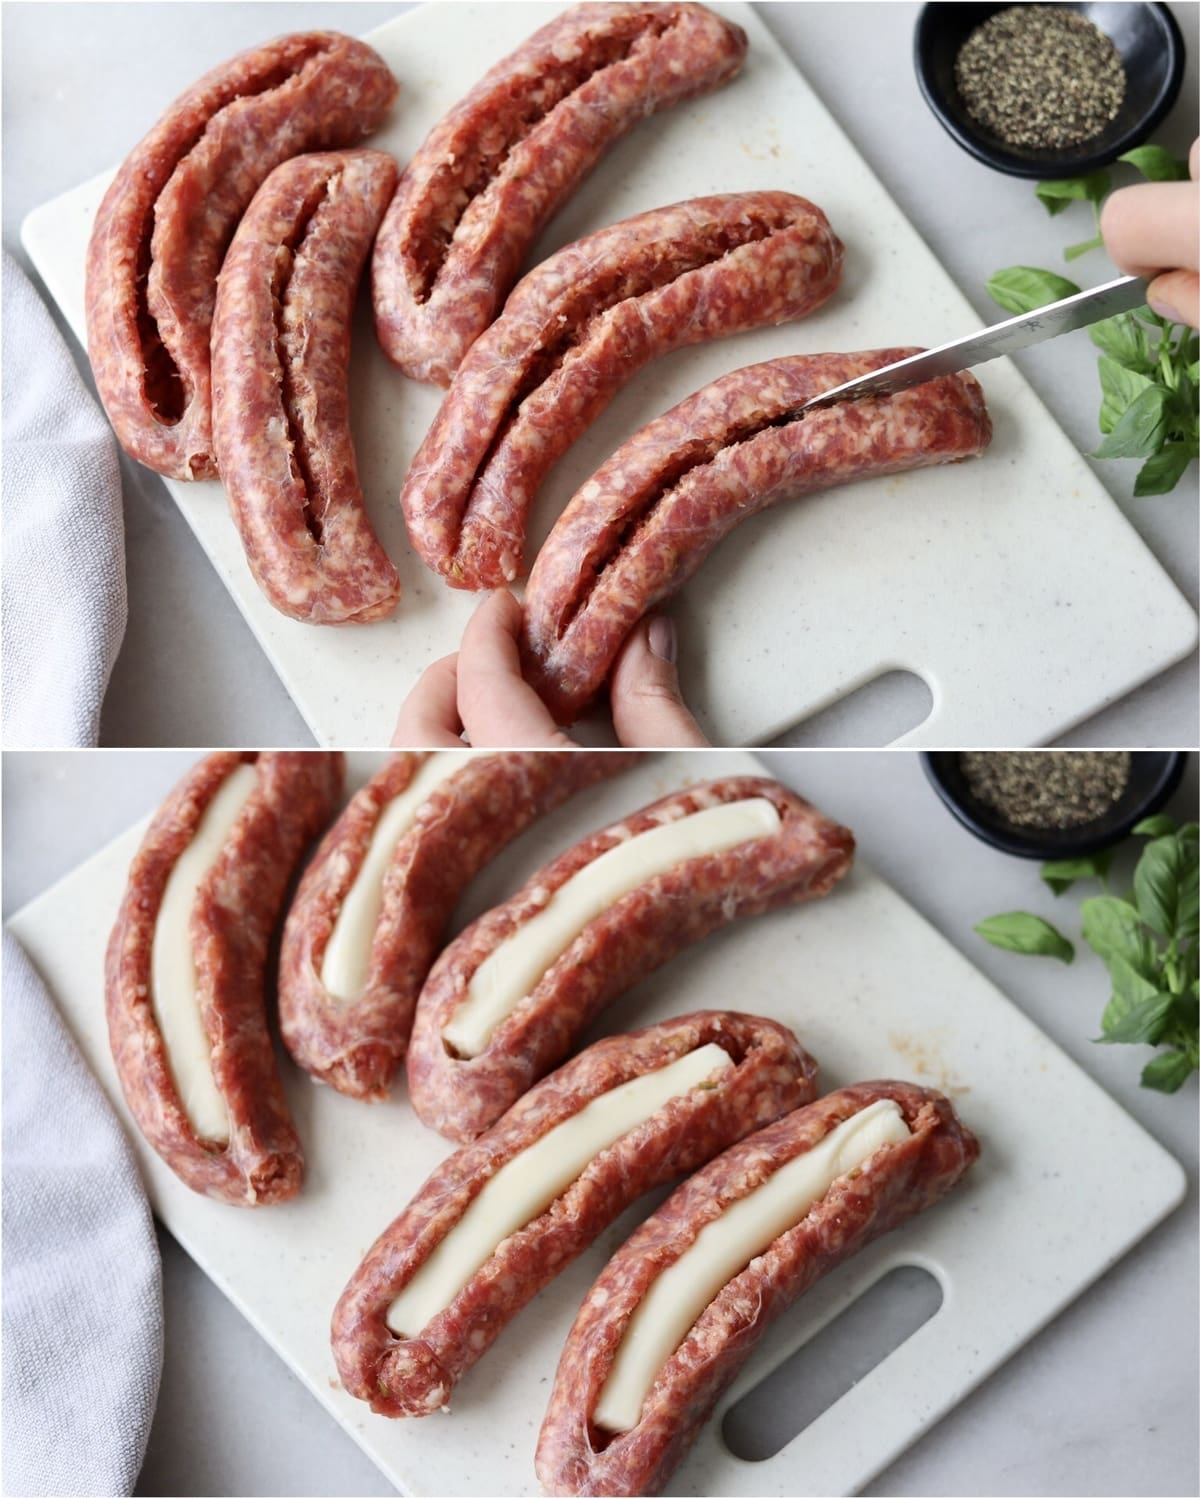 Collage showing the process of cutting a long slice into each sausage link and pressing cheese inside the slices.